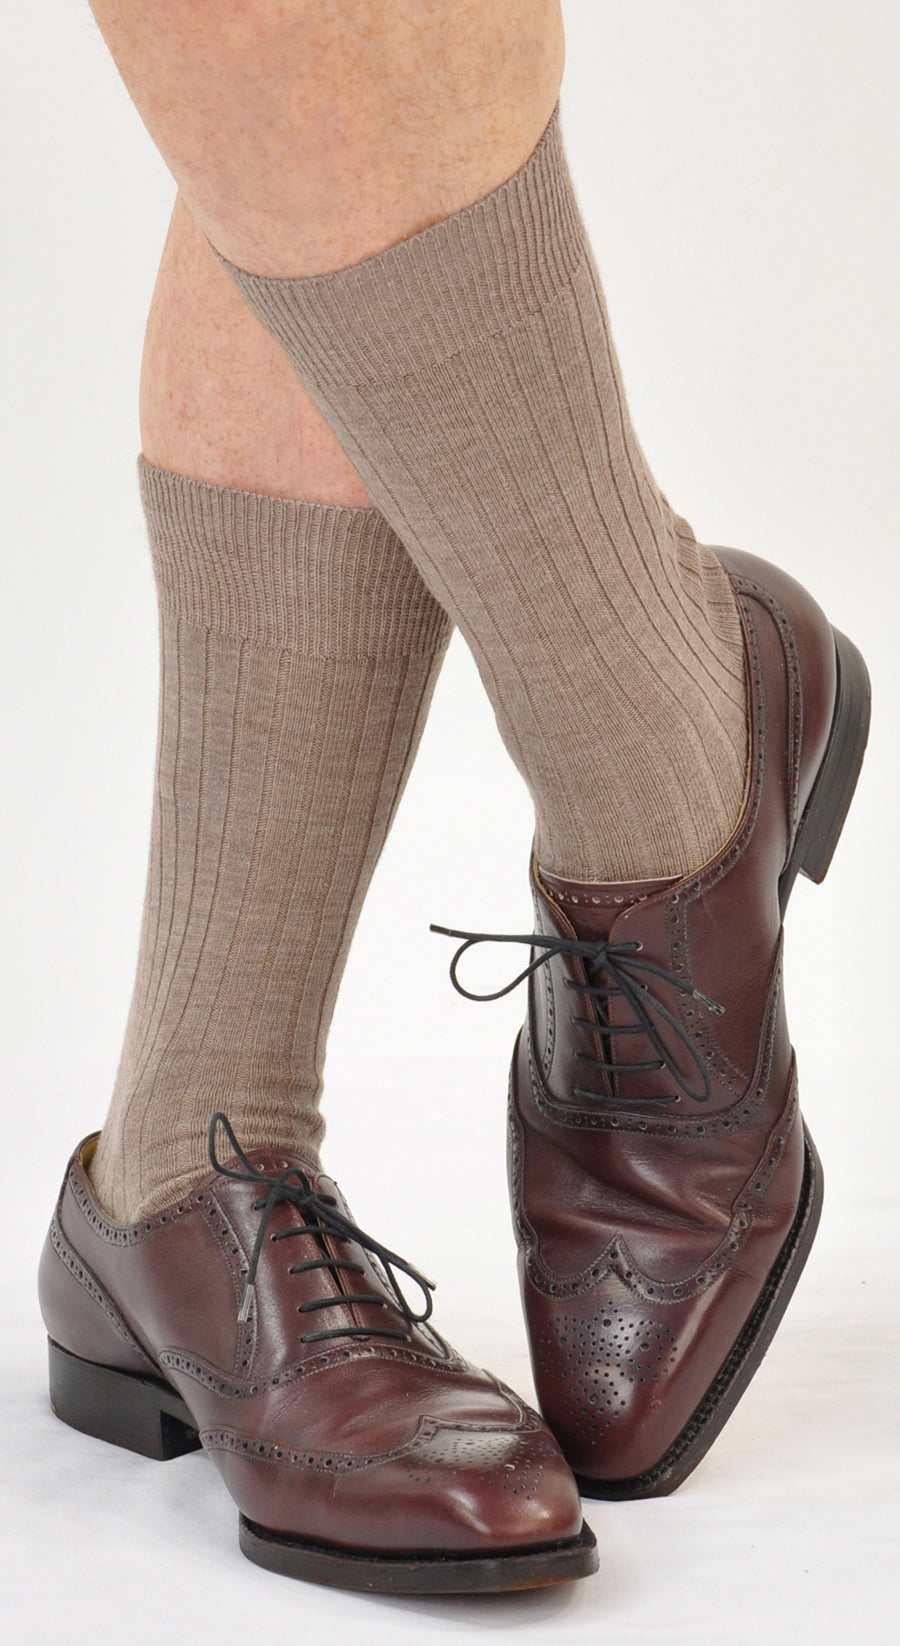 Kabbaz-Kelly 100% Merino Mid-Calf Dress Socks